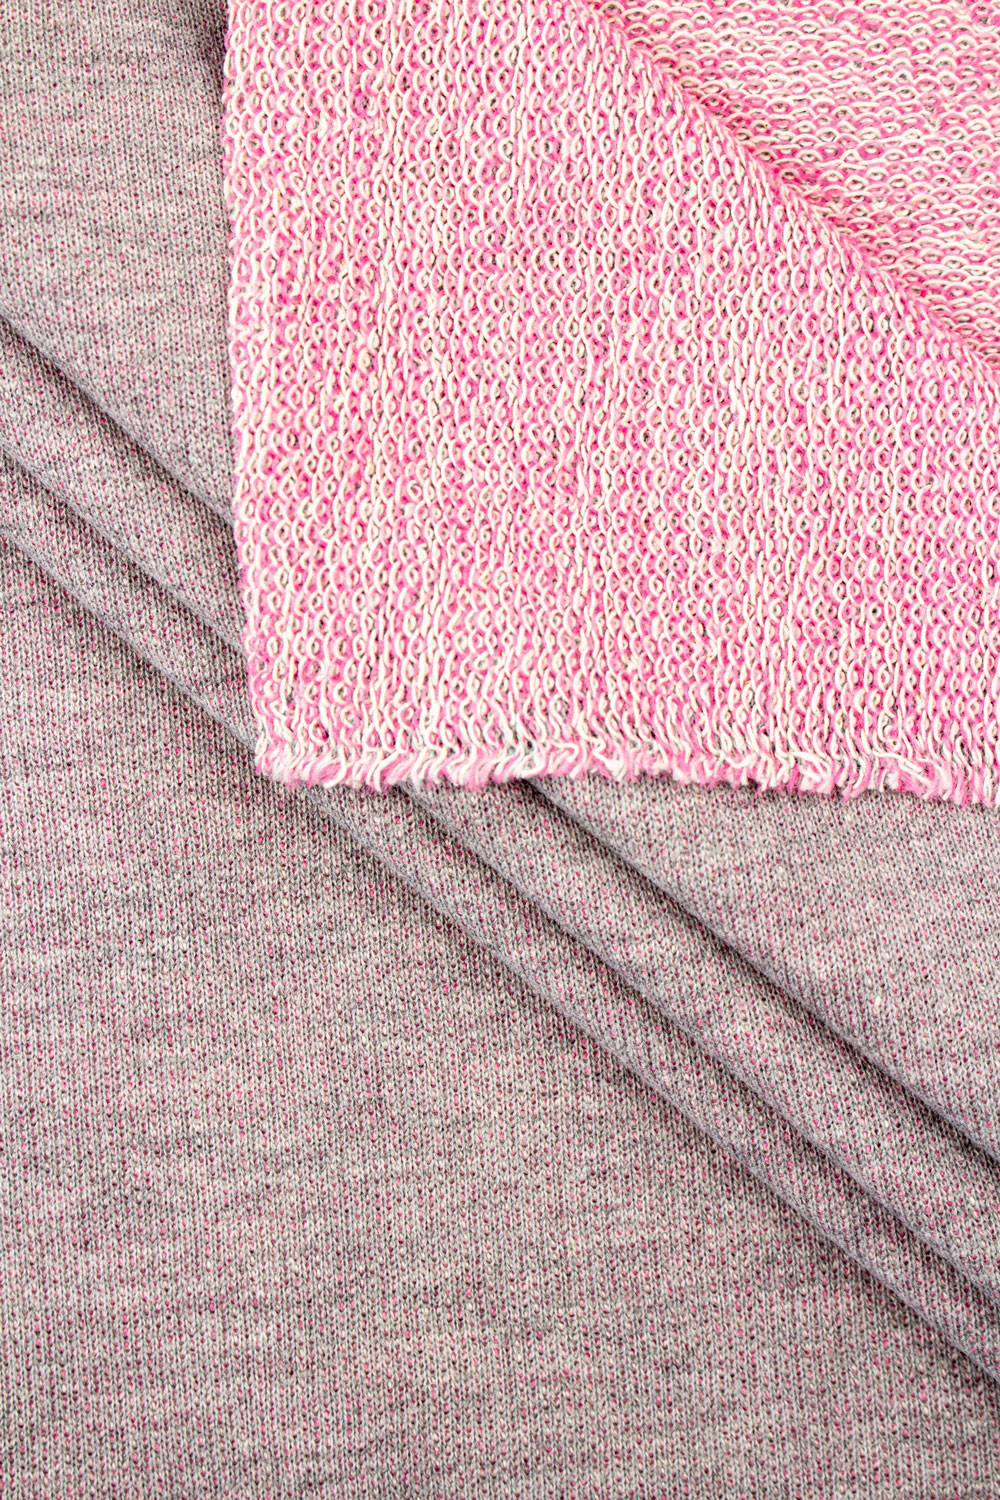 Knit - French Terry - Grey Melange With Pink Bottom Layer - 180 cm - 255 g/m2